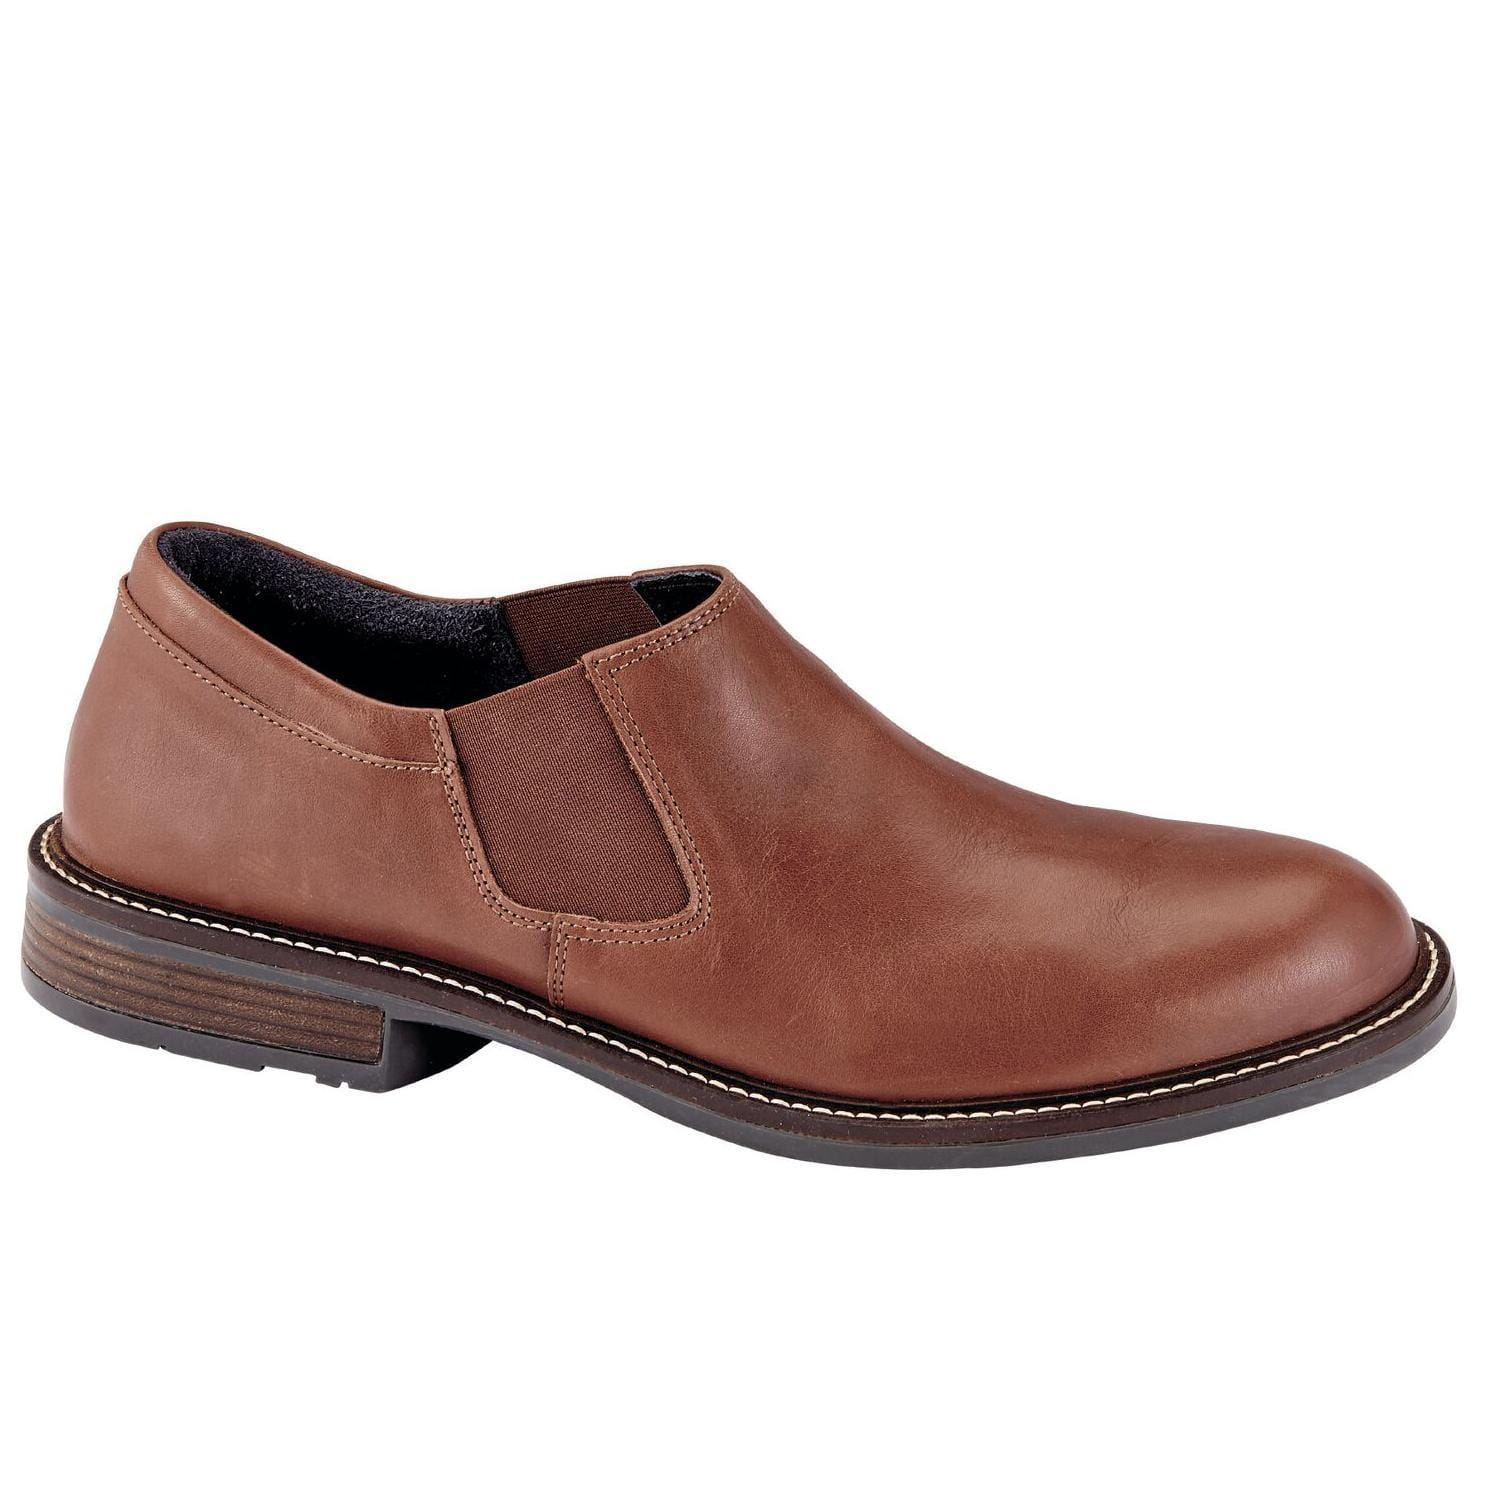 Naot Director Men's Cork Footbed Technical Lined Leather Slip-On Shoe